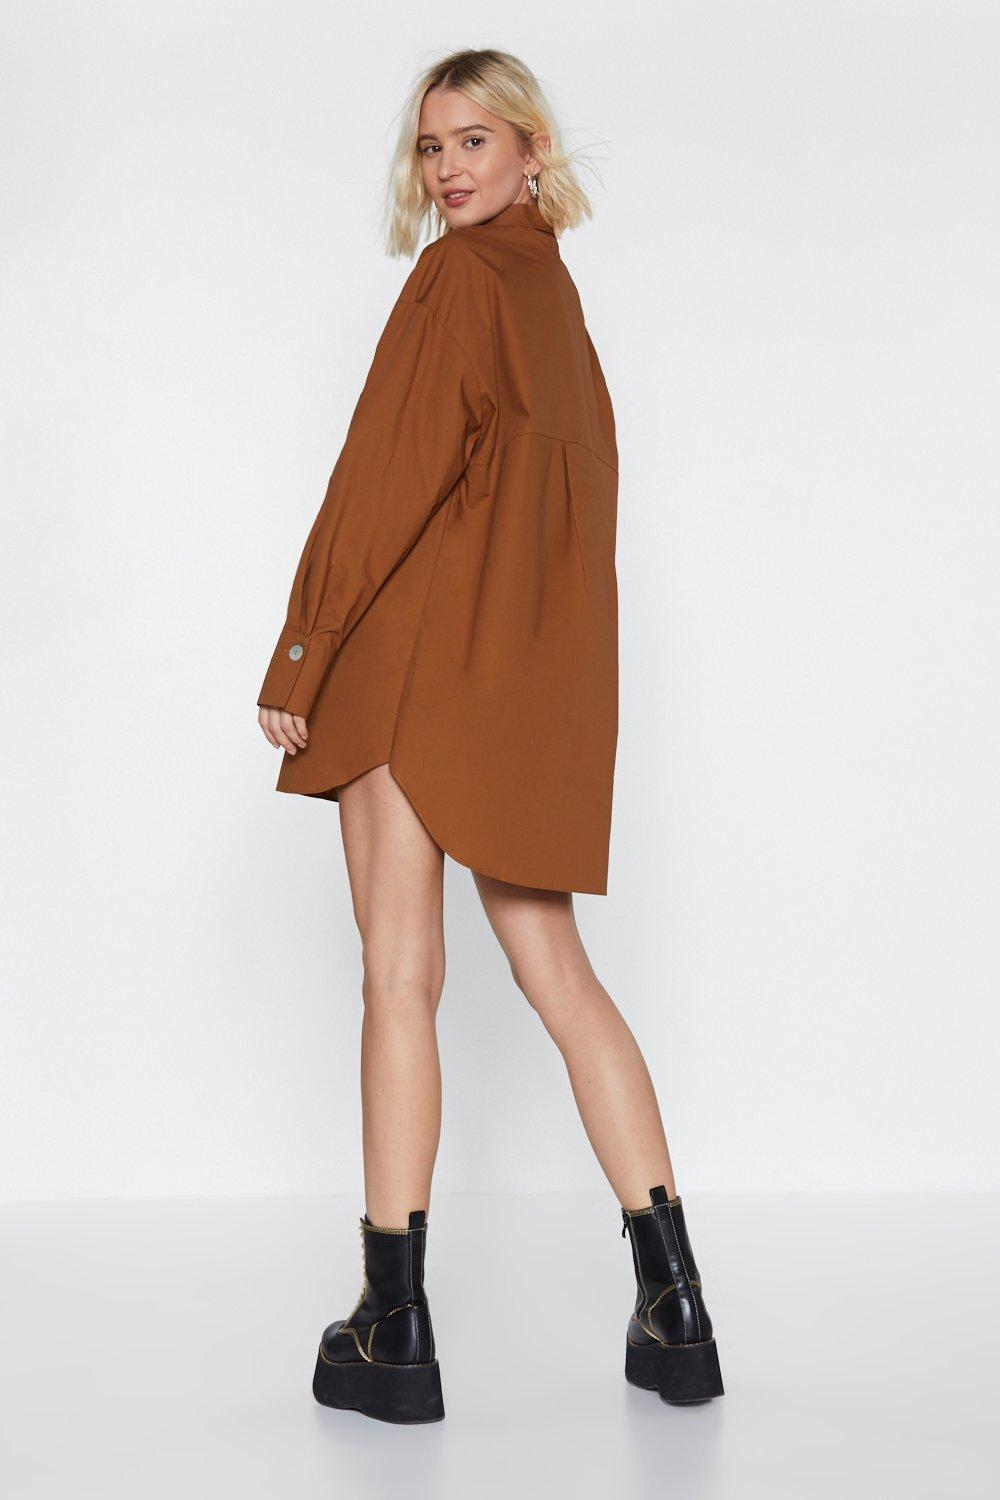 2ba9b806d009 Settle Button-Down Shirt Dress. Hover to zoom